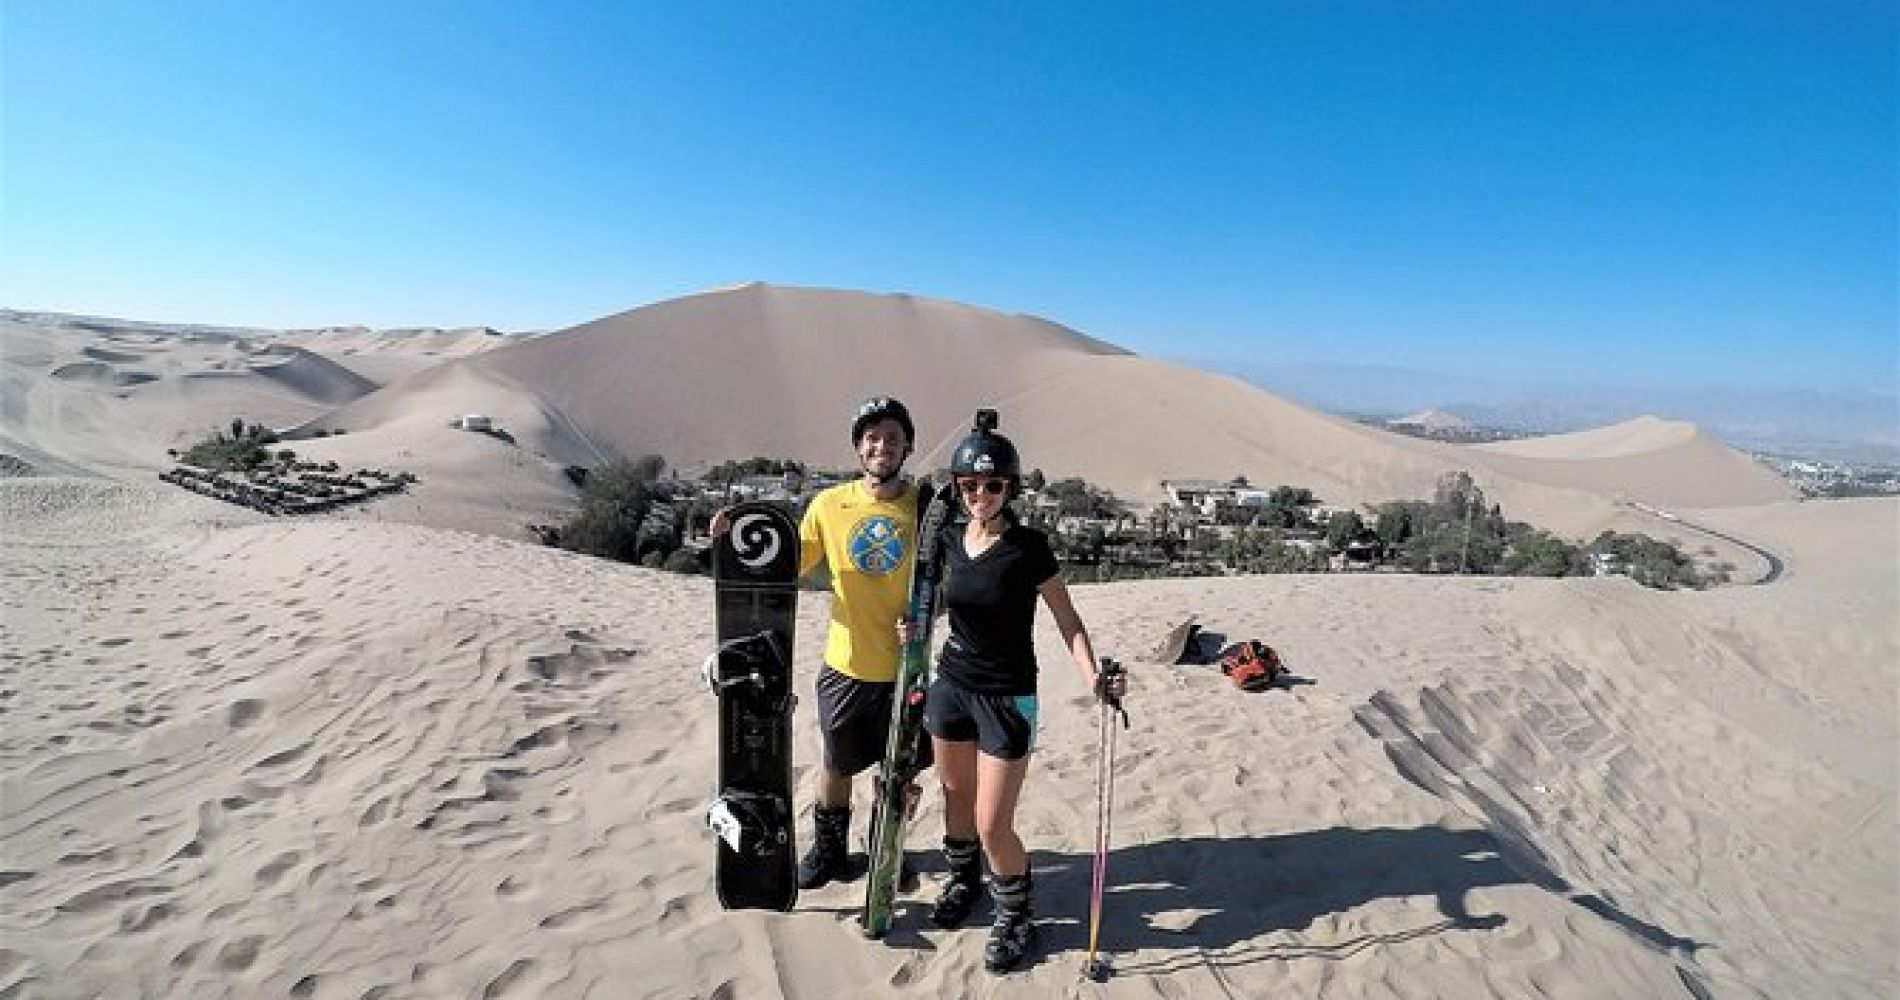 Sandboarding in Huacachina for Two in Peru